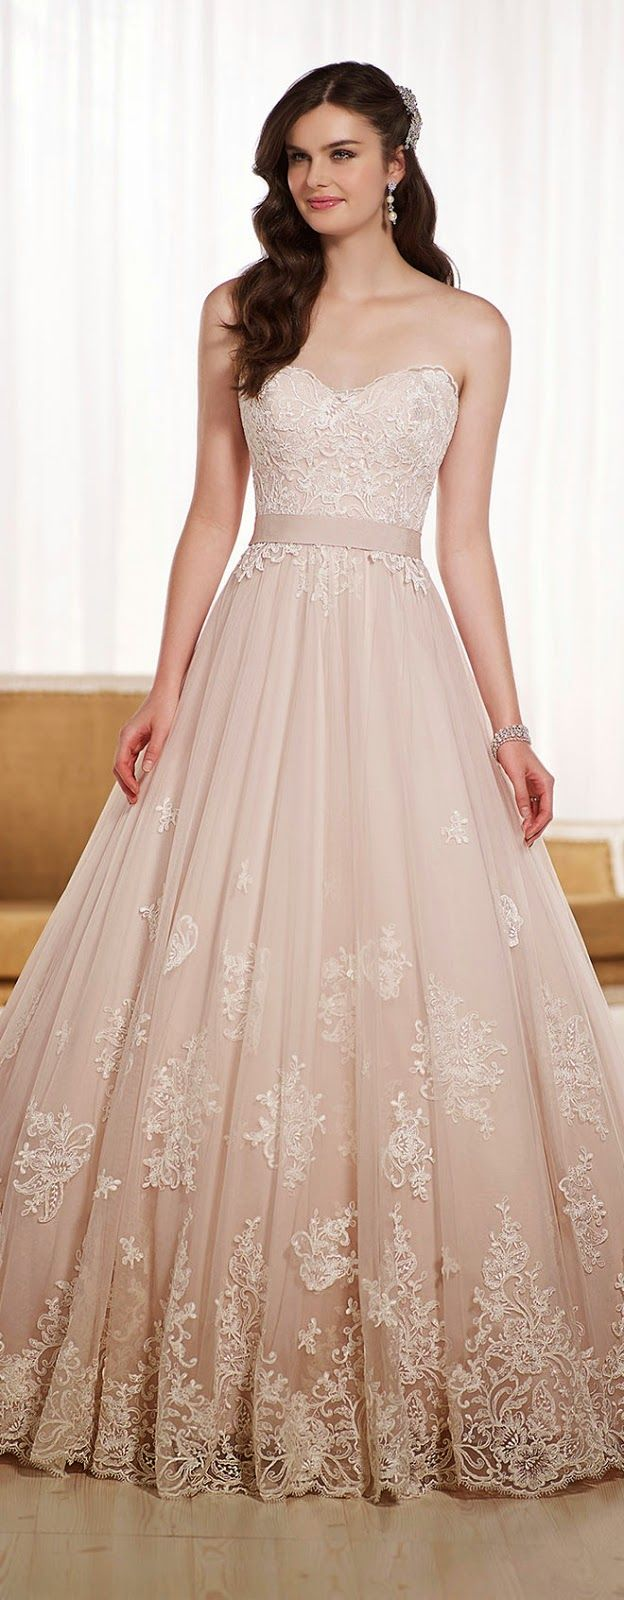 colored wedding dresses wedding dresses with color 25 Best Ideas about Colored Wedding Dresses on Pinterest Colorful wedding dresses Color wedding dresses and Pink wedding dresses